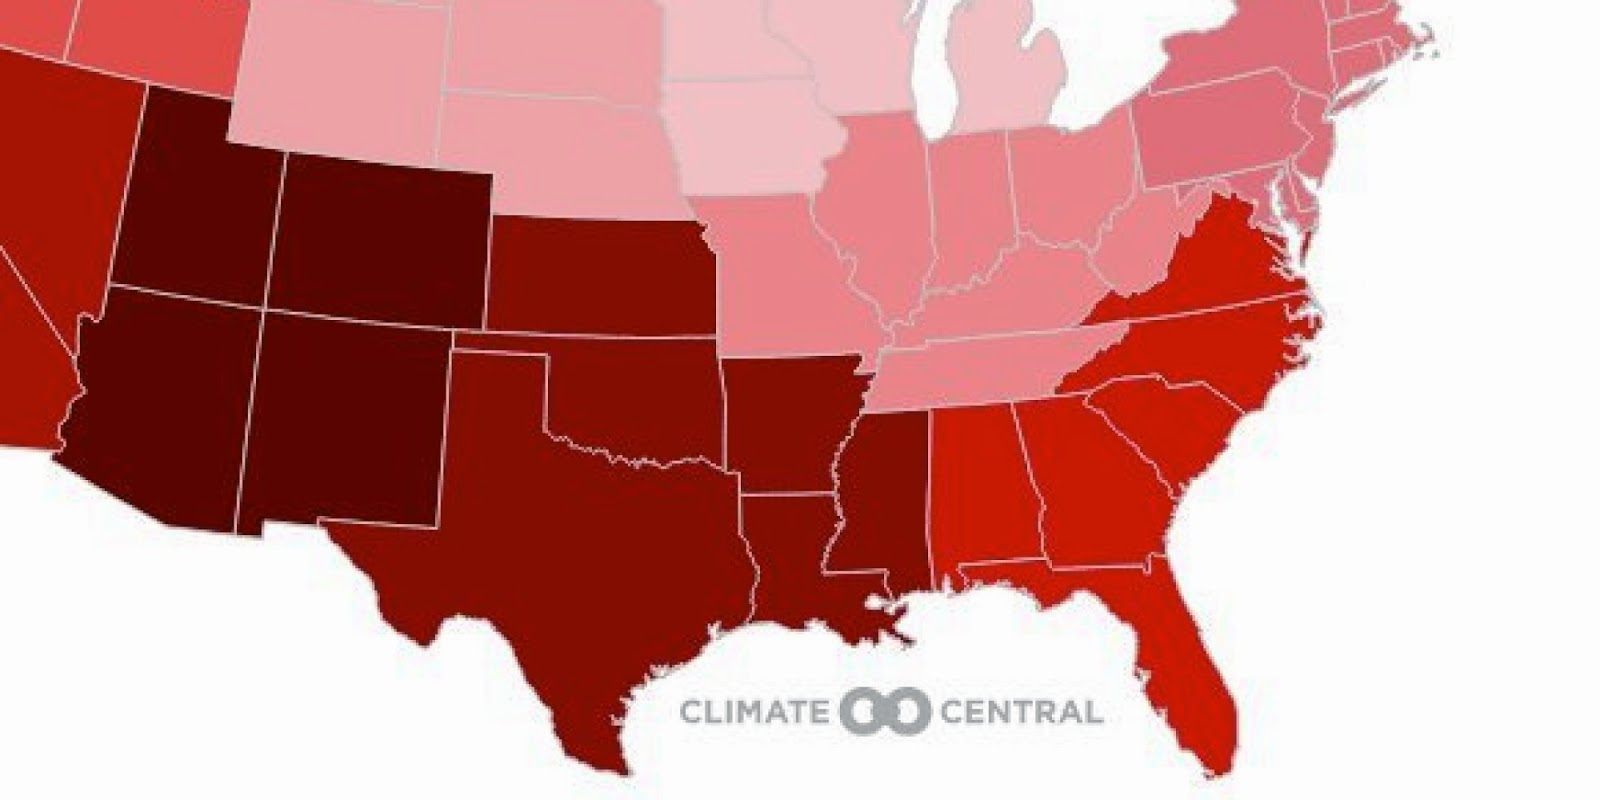 Average summer temperatures have been rising in every region since 1970. The map shows the rate at which summers have been warming in every region of the country since then. (Credit: www.huffingtonpost.com) Click to enlarge.